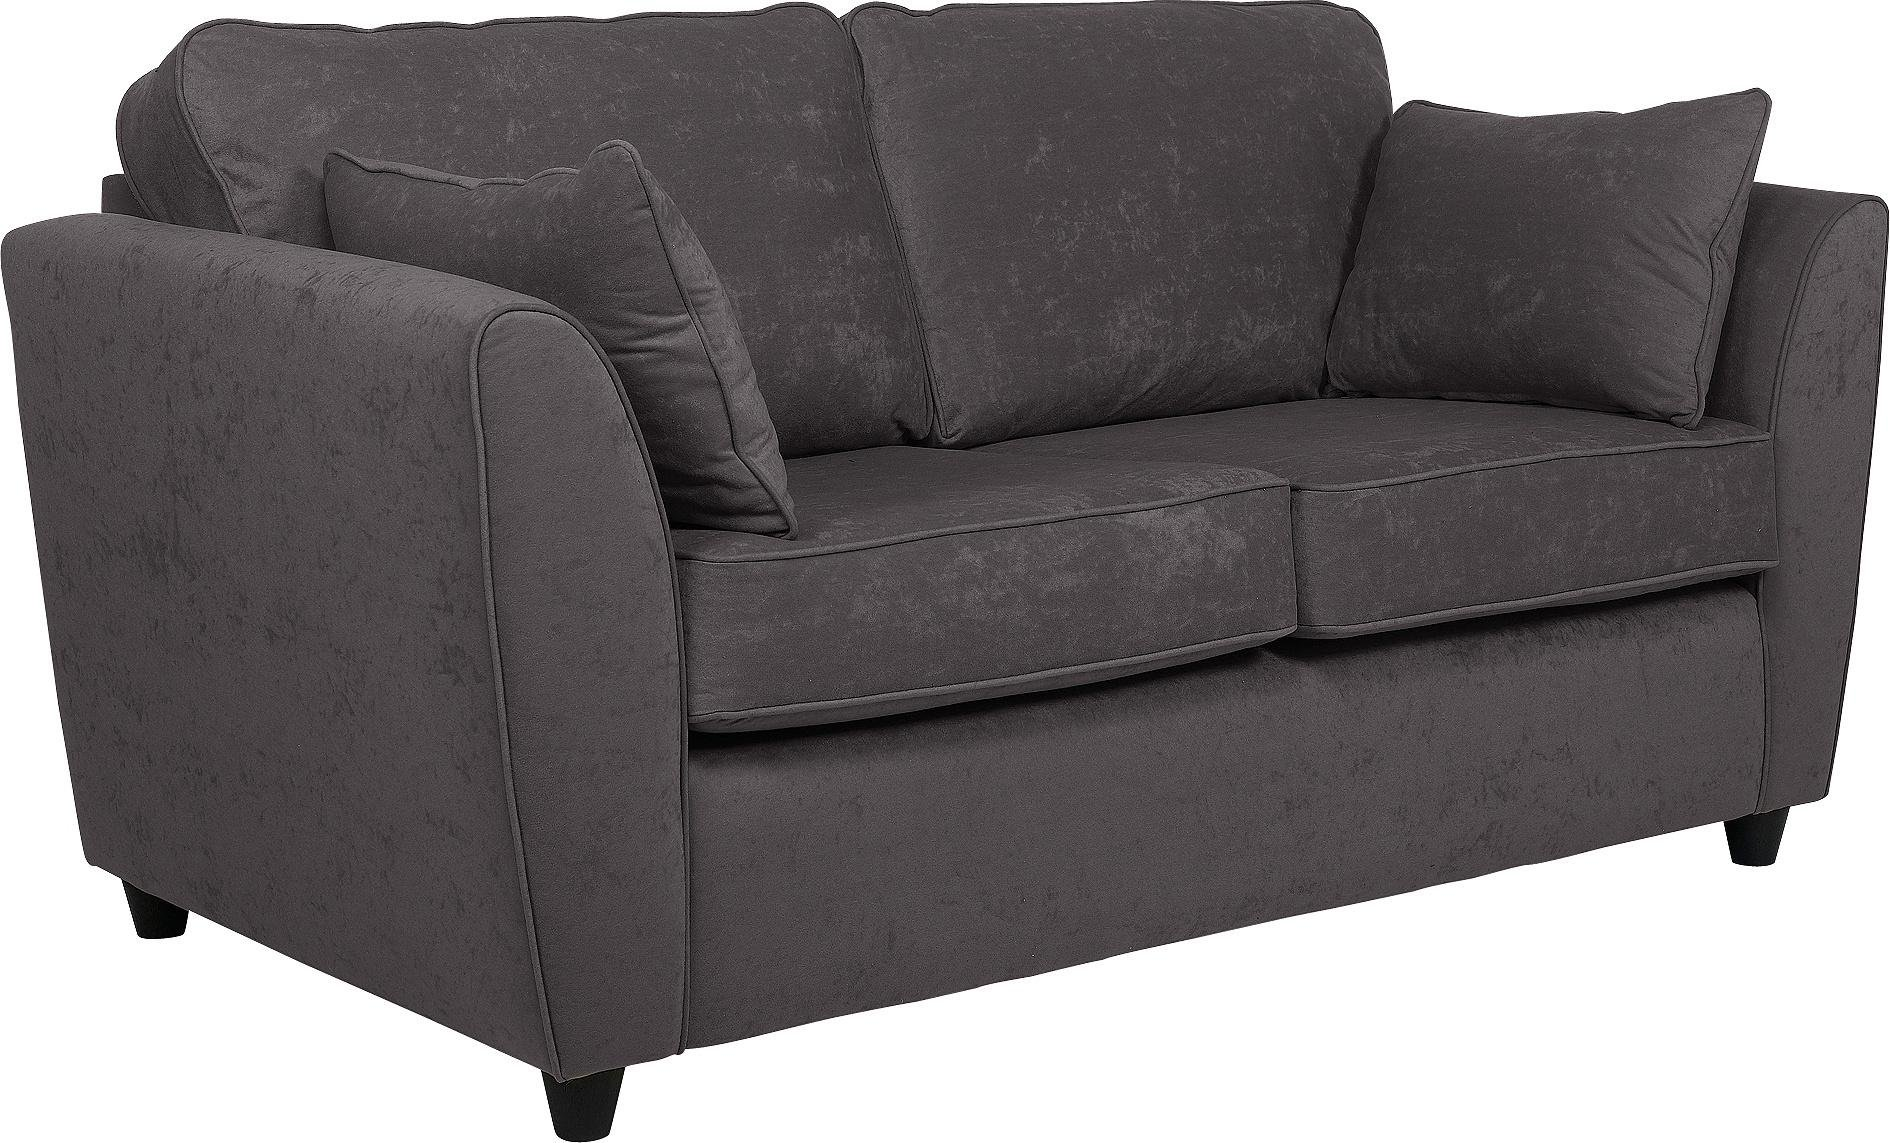 fabric chesterfield sofa argos cheap bed with storage uk sale on home eleanor 3 seater charcoal